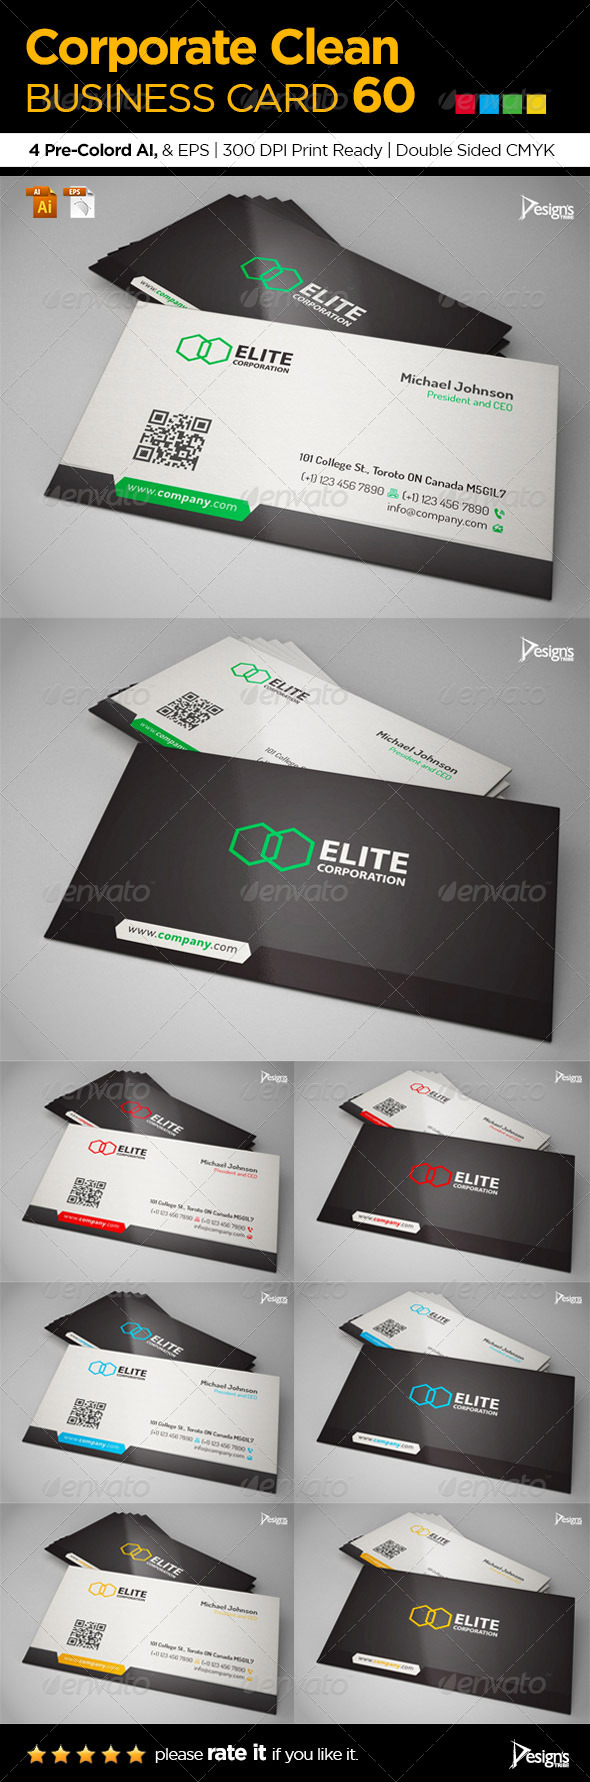 Corporate Clean Business Card 60 - Corporate Business Cards